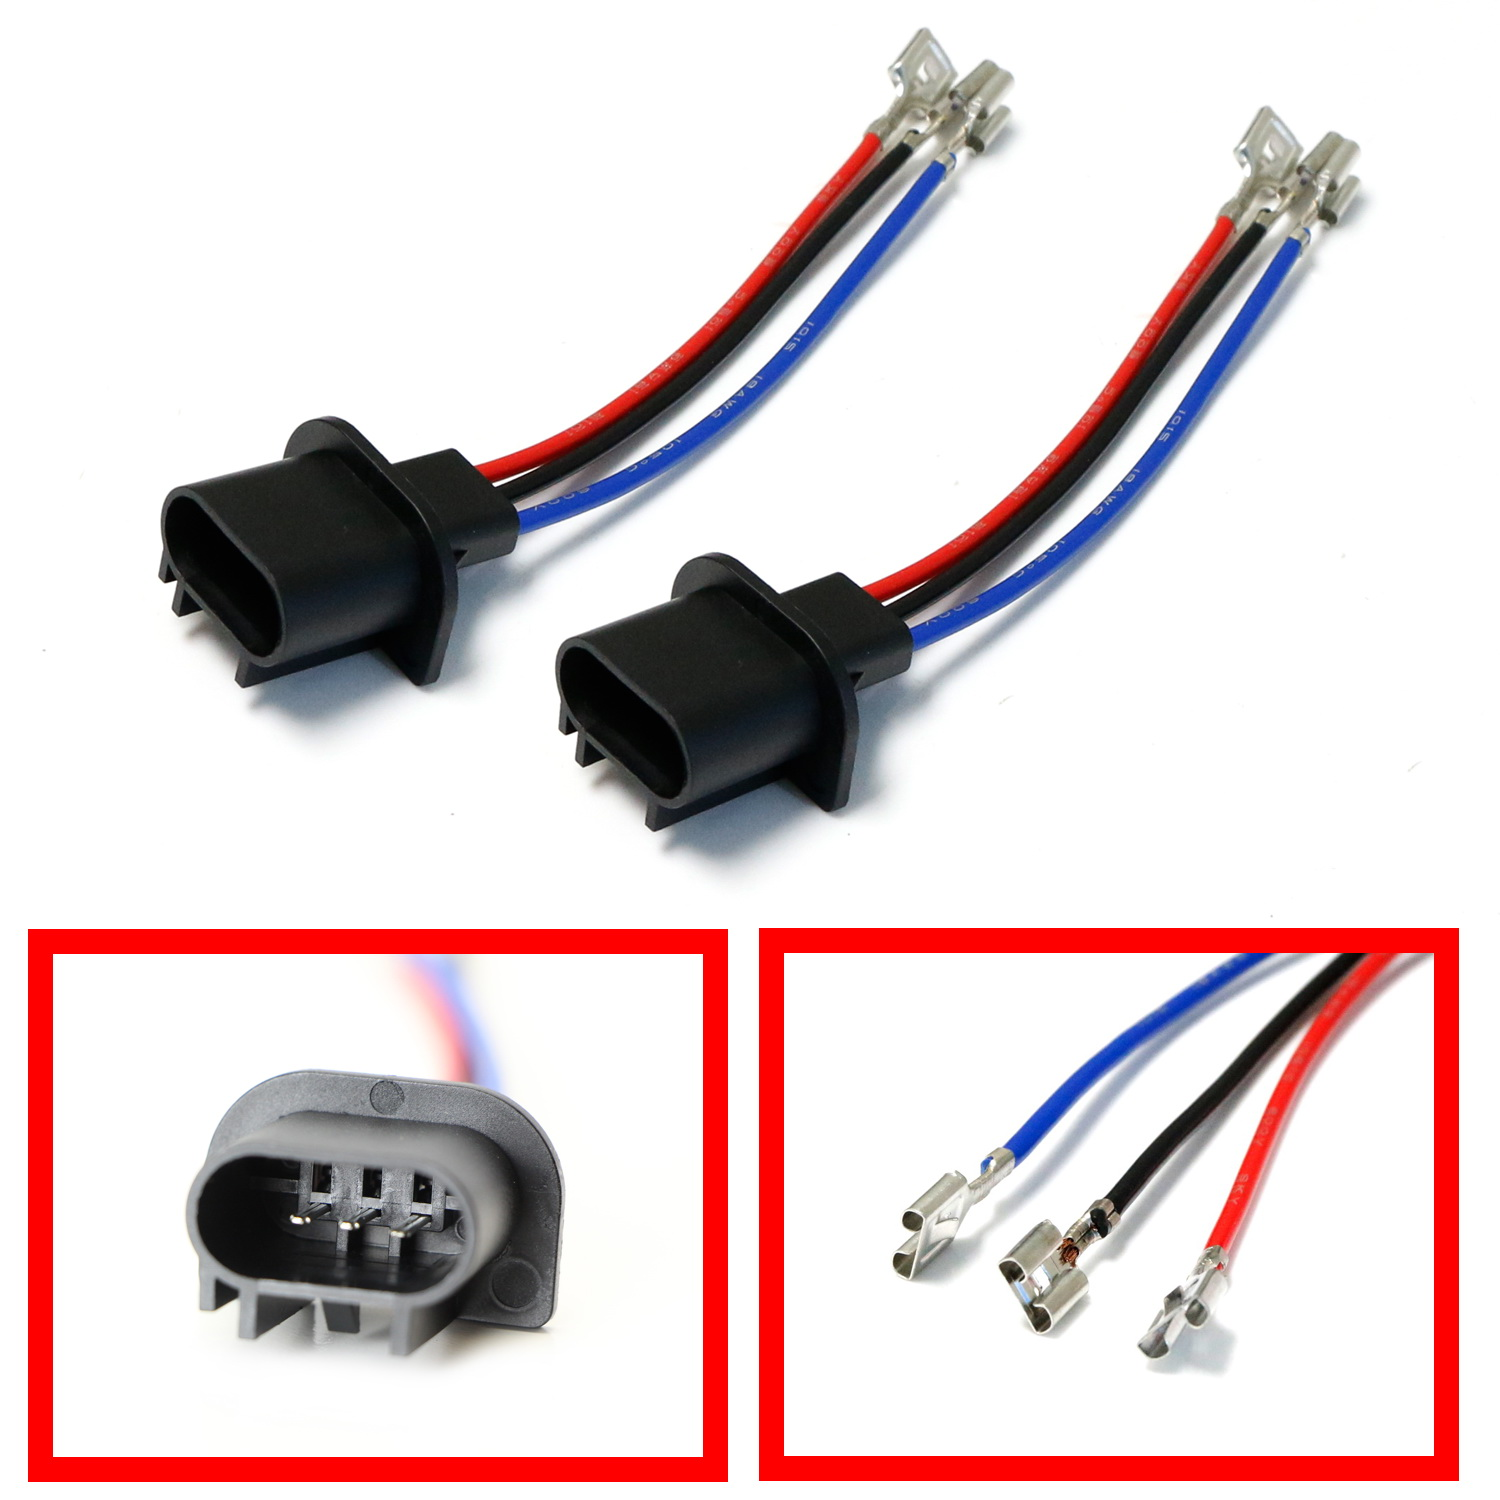 hight resolution of ijdmtoy 2 h13 9008 to 9007 9004 or 9003 h4 polarity adjustable conversion adapter wiring kit for headlight conversion retrofit walmart com